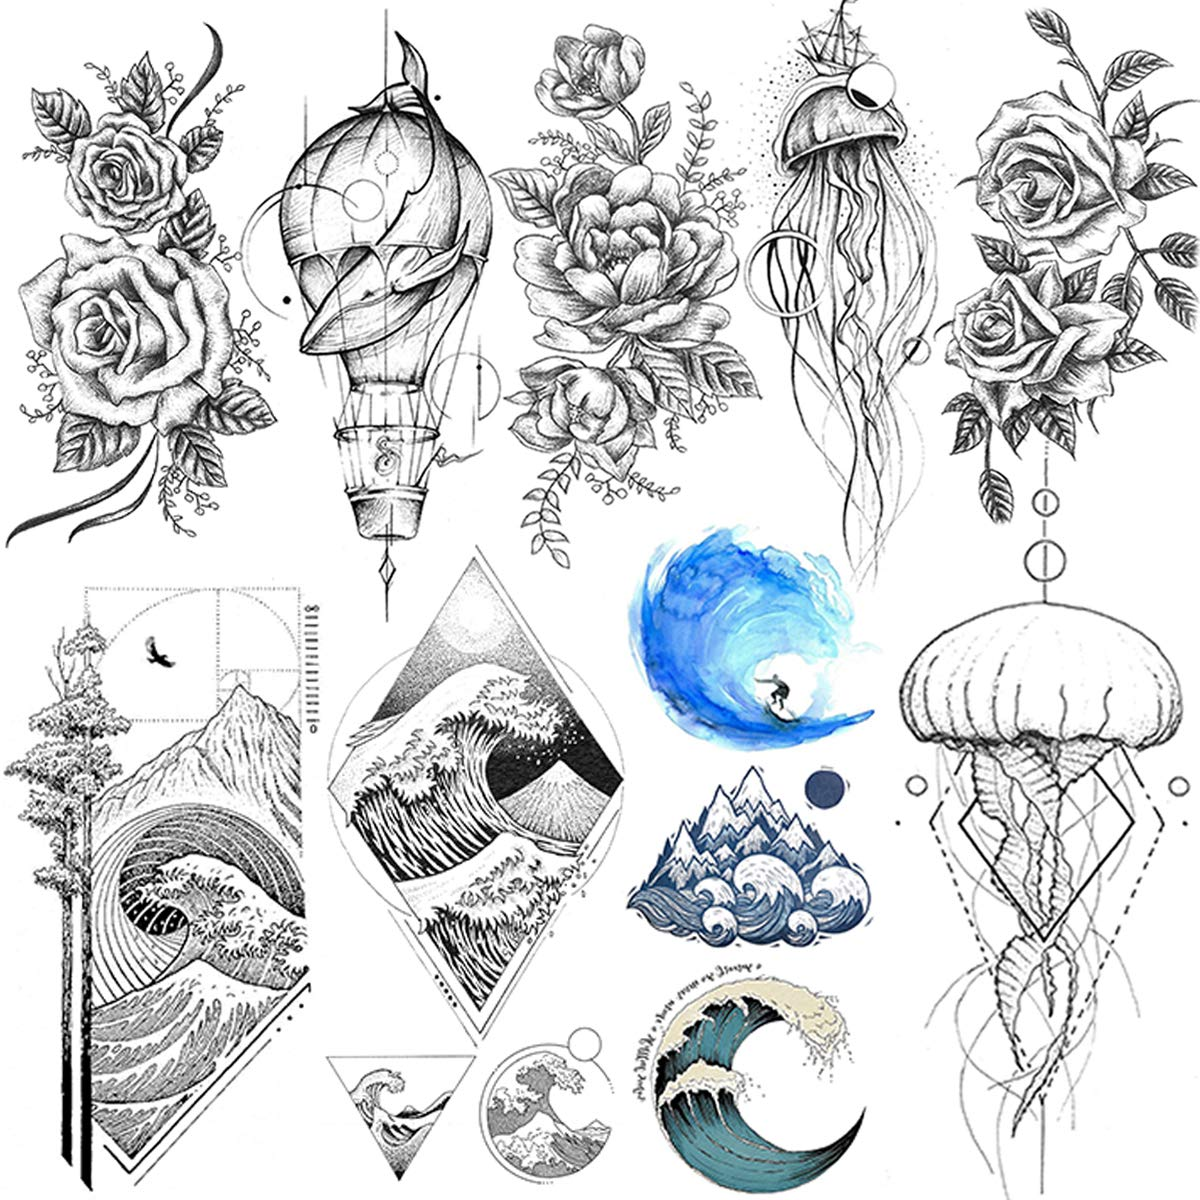 VANTATY 9 Sheets Sea Waves Surfing Temporary Tattoos For Women Kids Waterproof Fake Body Art Arm Jellyfish Whale Peony Flower Tattoo Stickers For Girls Lady Wrist Drawing Tatoo Paste.